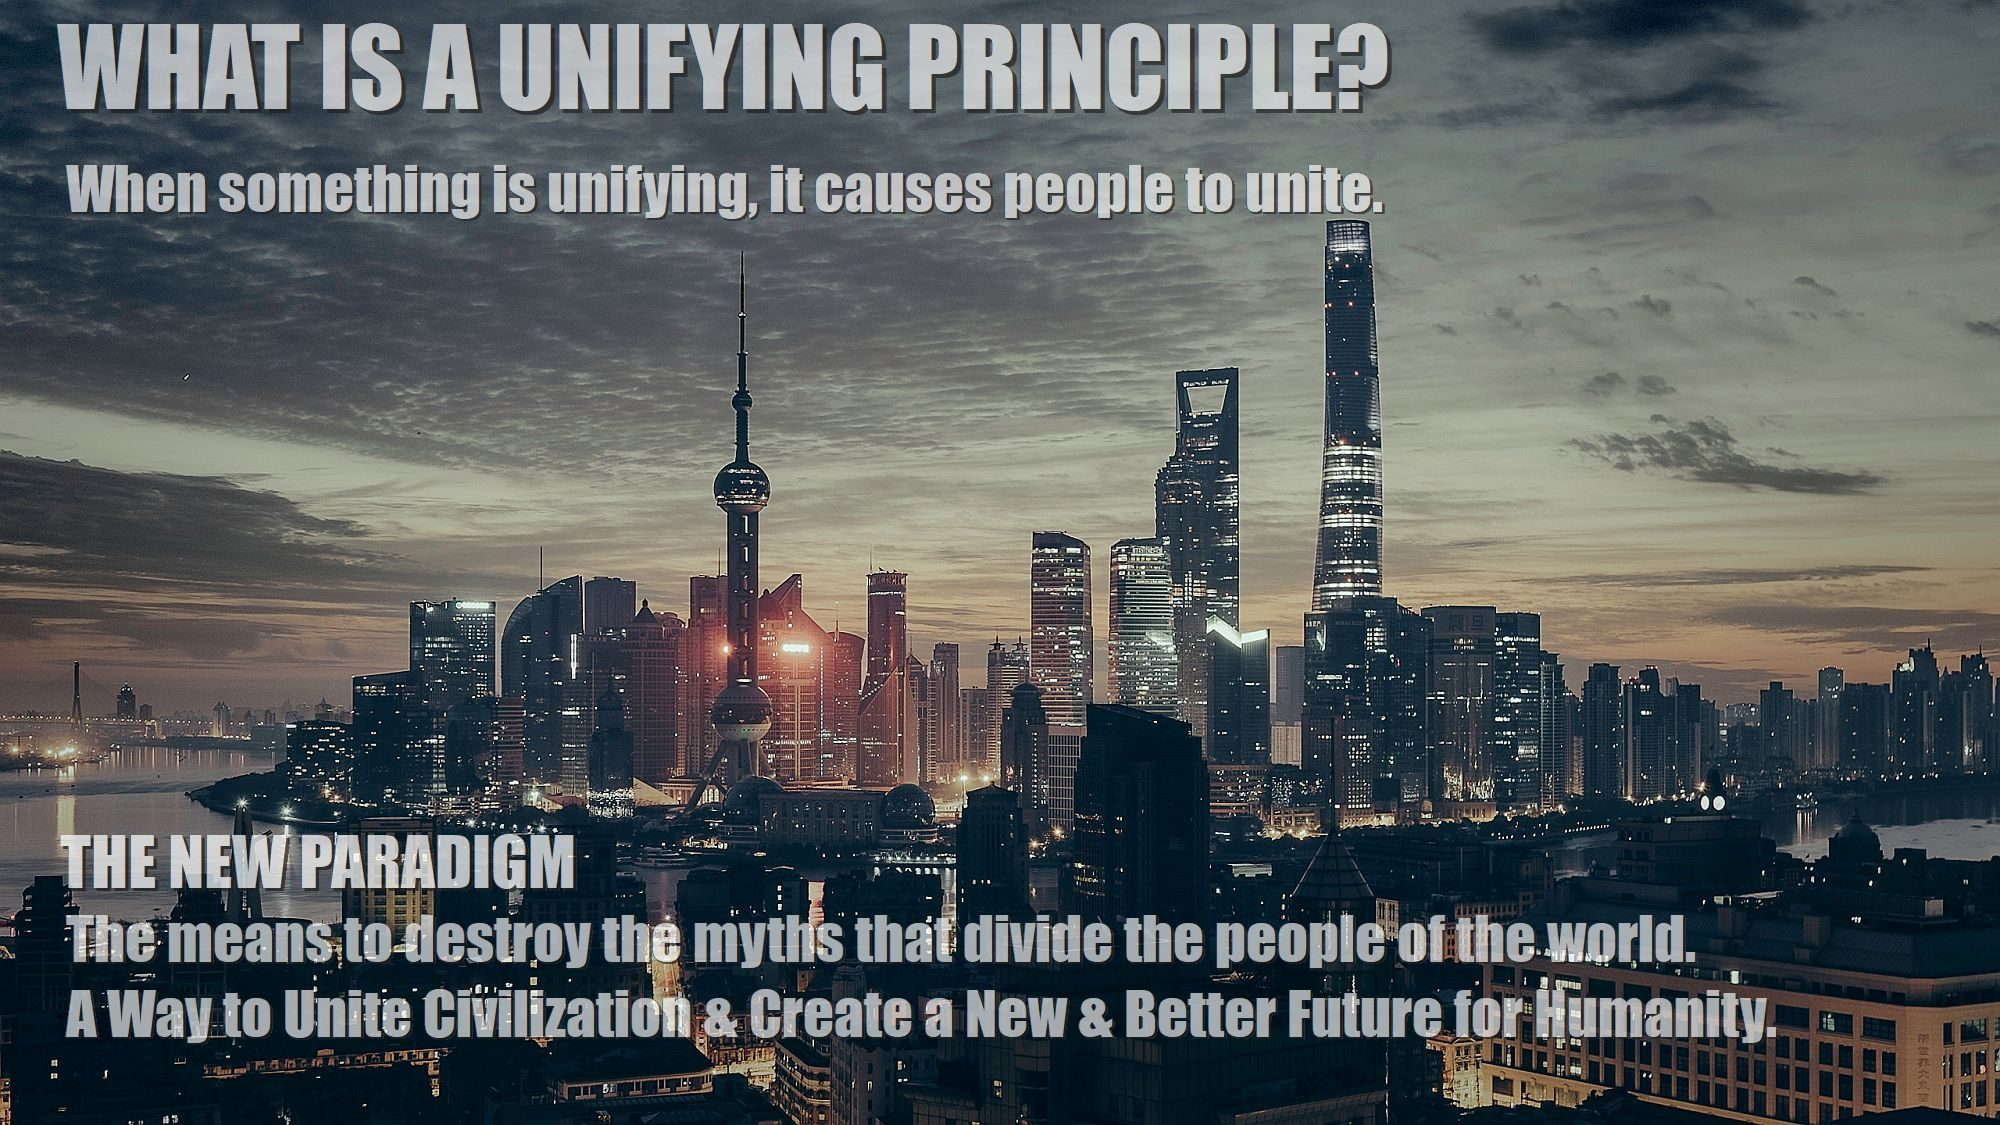 What-is-a-unifying-principle-a-way-to-unite-civilization-create-a-new-better-future-for-humanity-2000